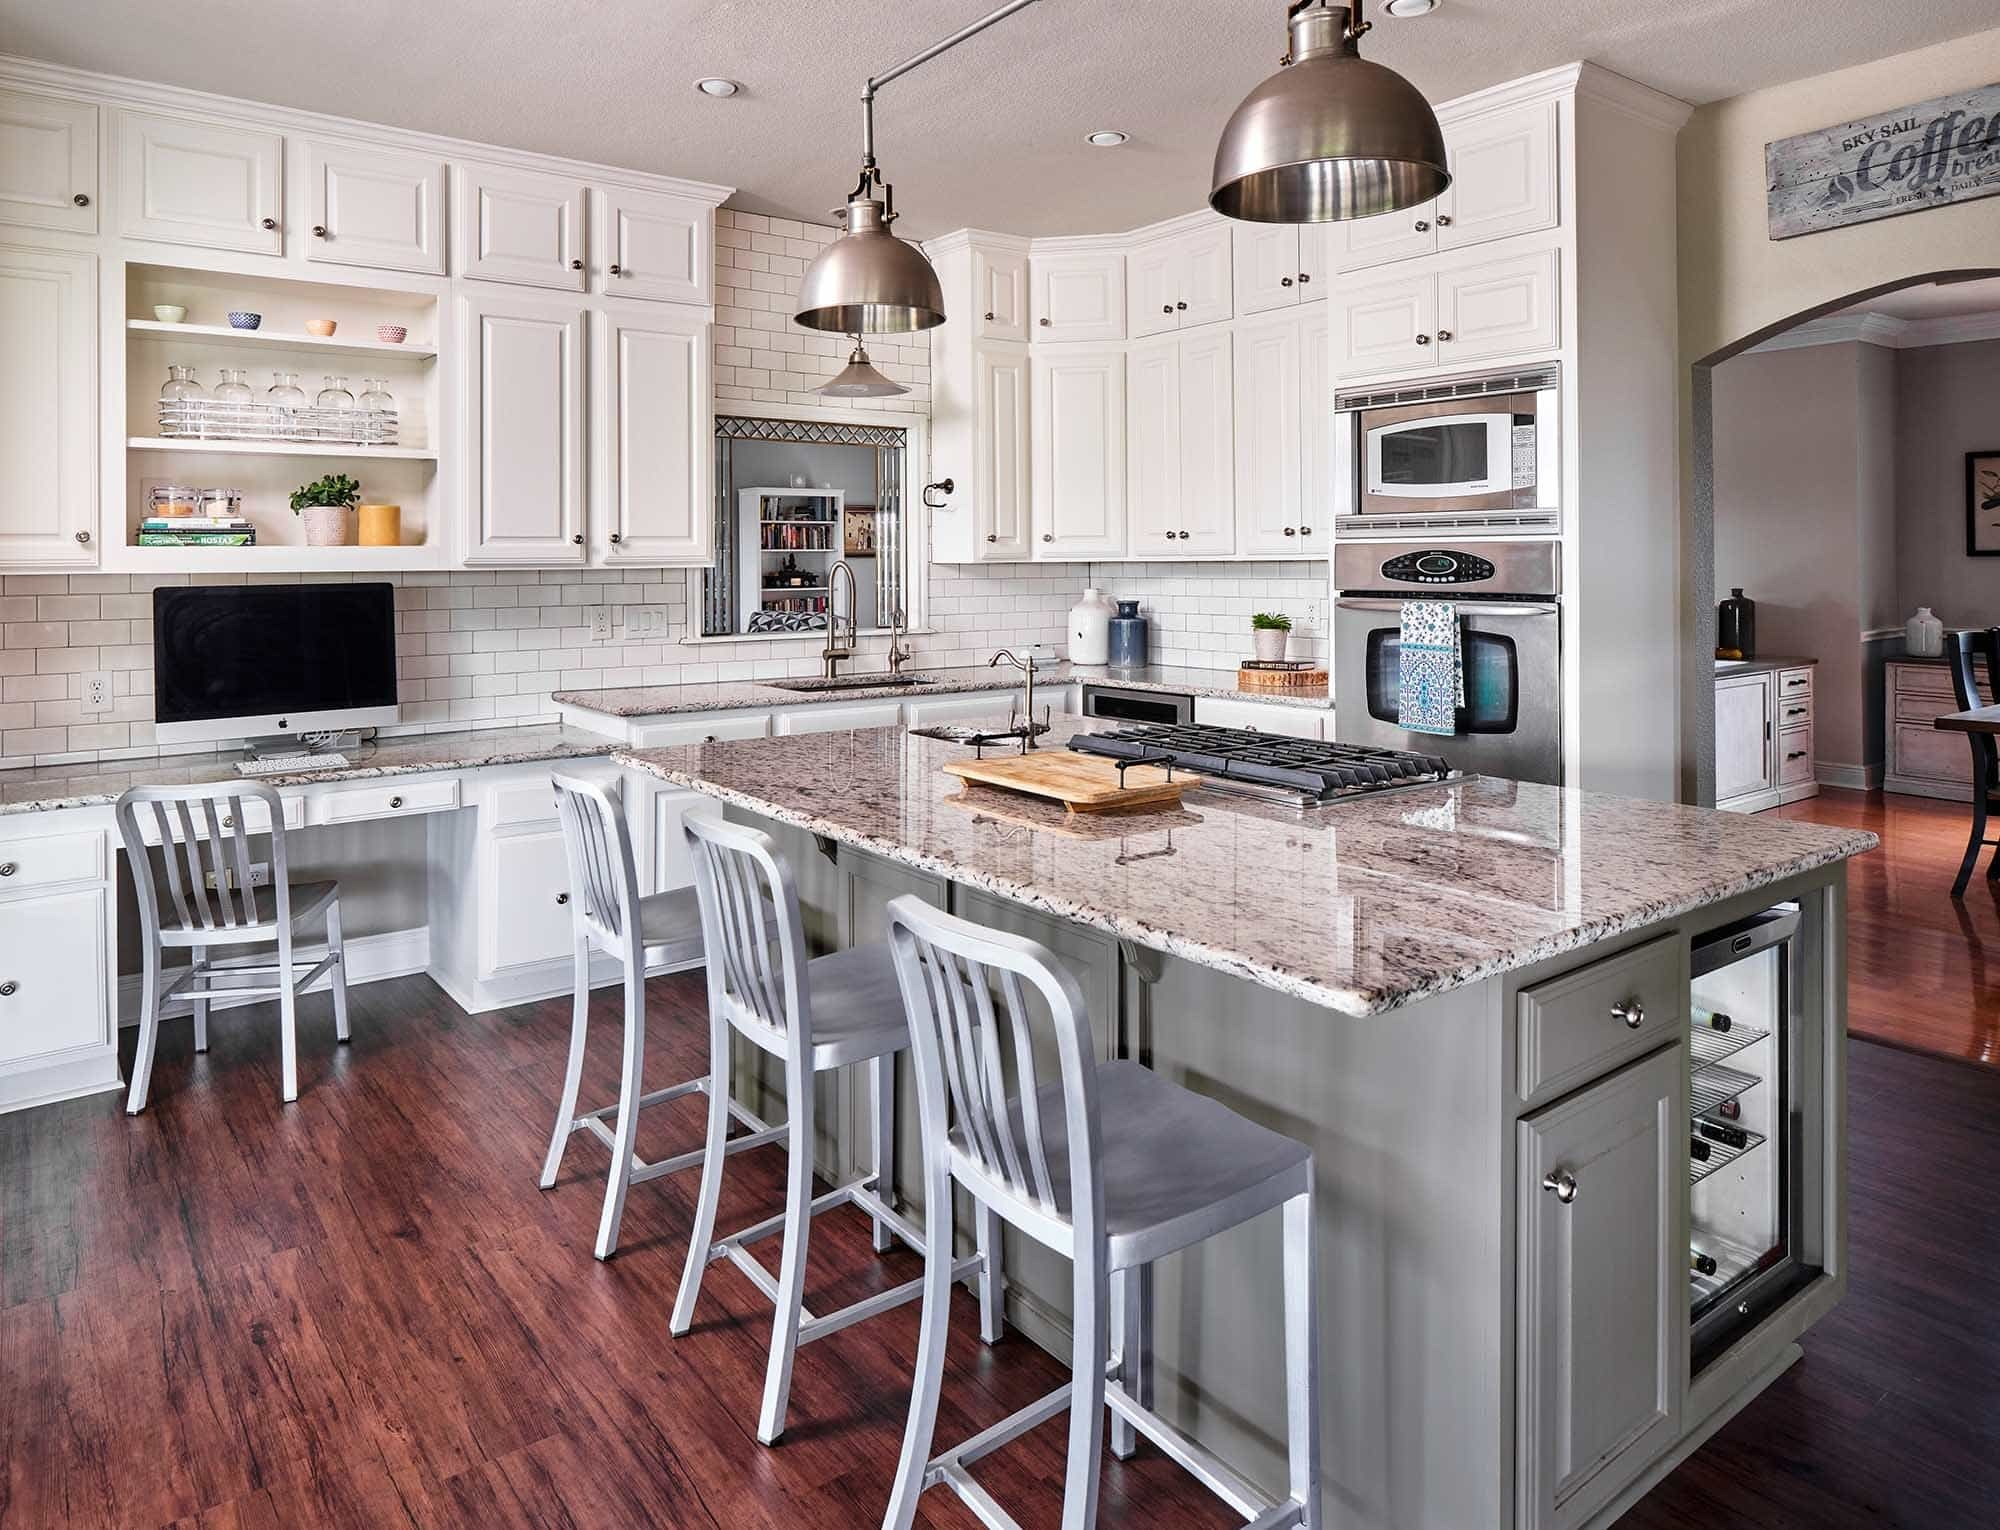 San Antonio Cabinet Painting Project Gallery See Our Work Paper Moon Painting In 2020 Grey Painted Kitchen Kitchen Island Cabinetry Hacienda Style Kitchen